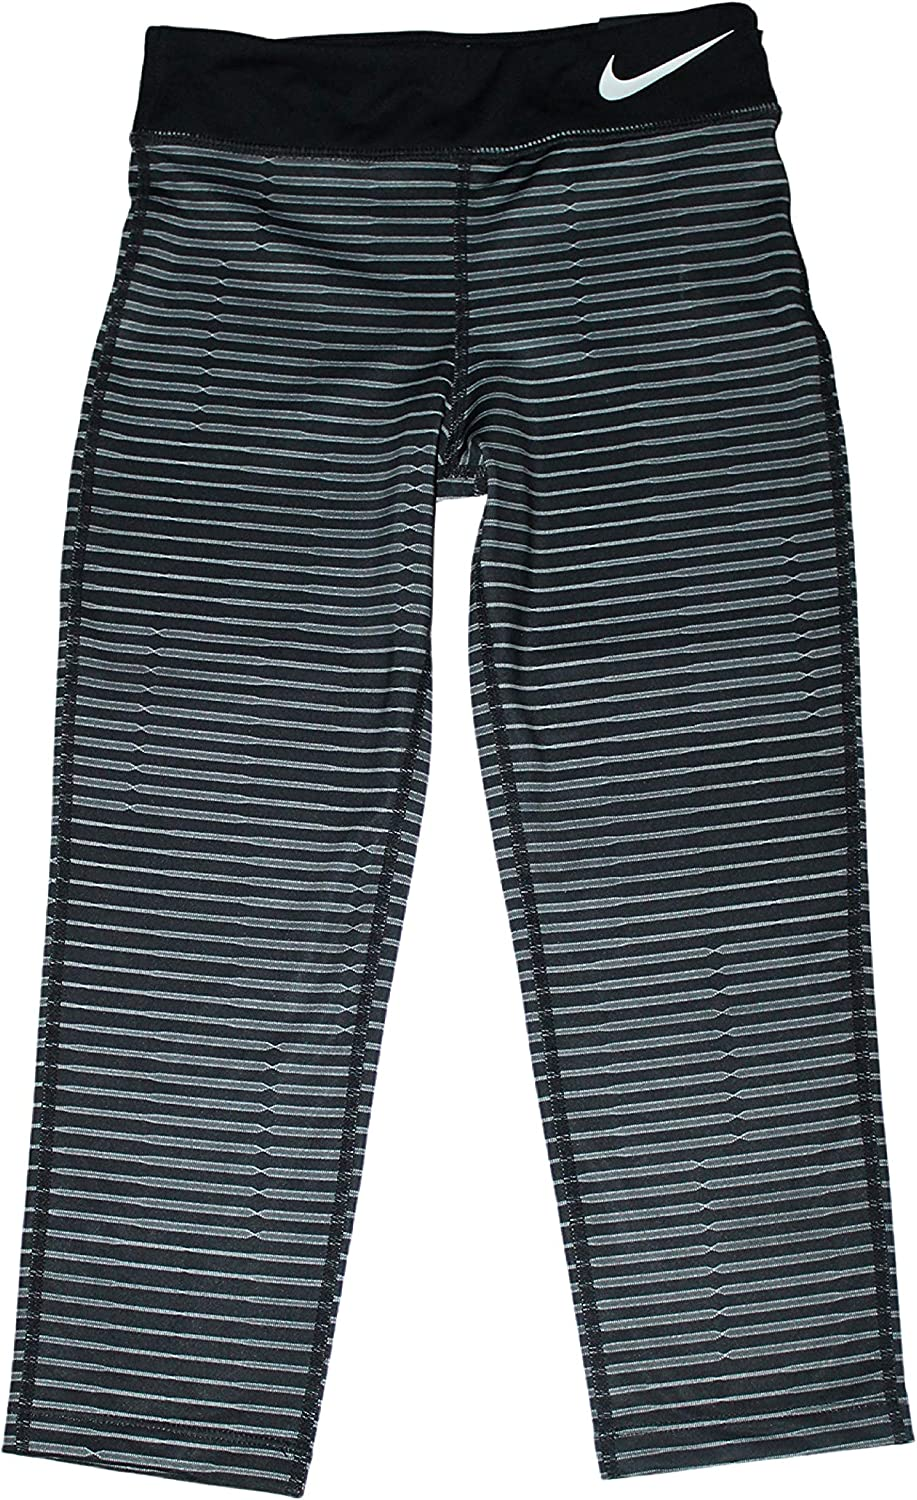 Nike Dry Youth Girls Tights Active Pants Leggings